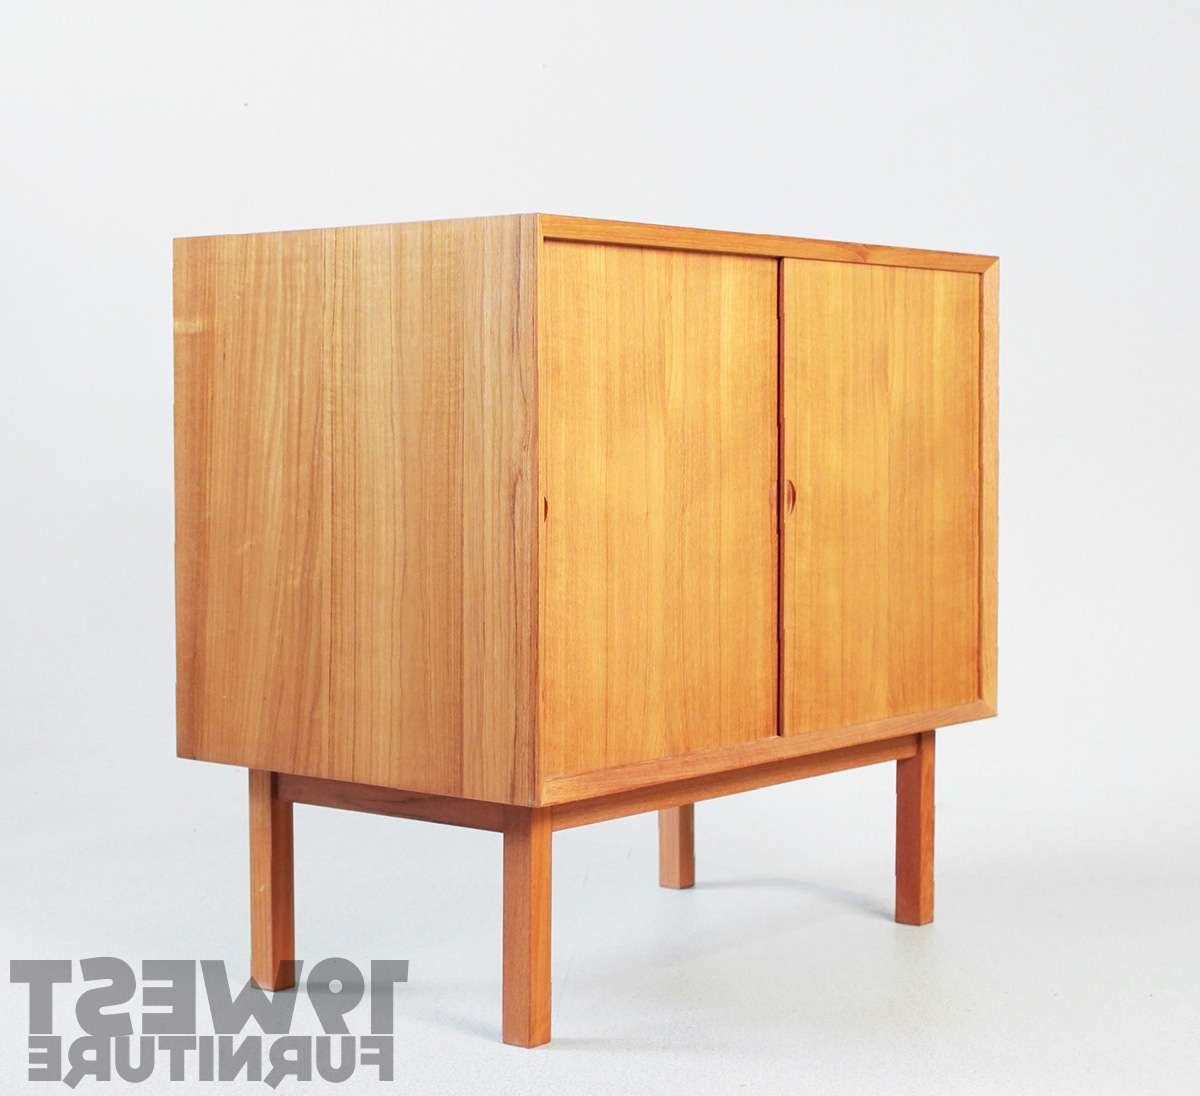 Kleine Sideboards, Poul Cadovius | 19 West With Regard To Kleine Sideboards (Gallery 8 of 20)